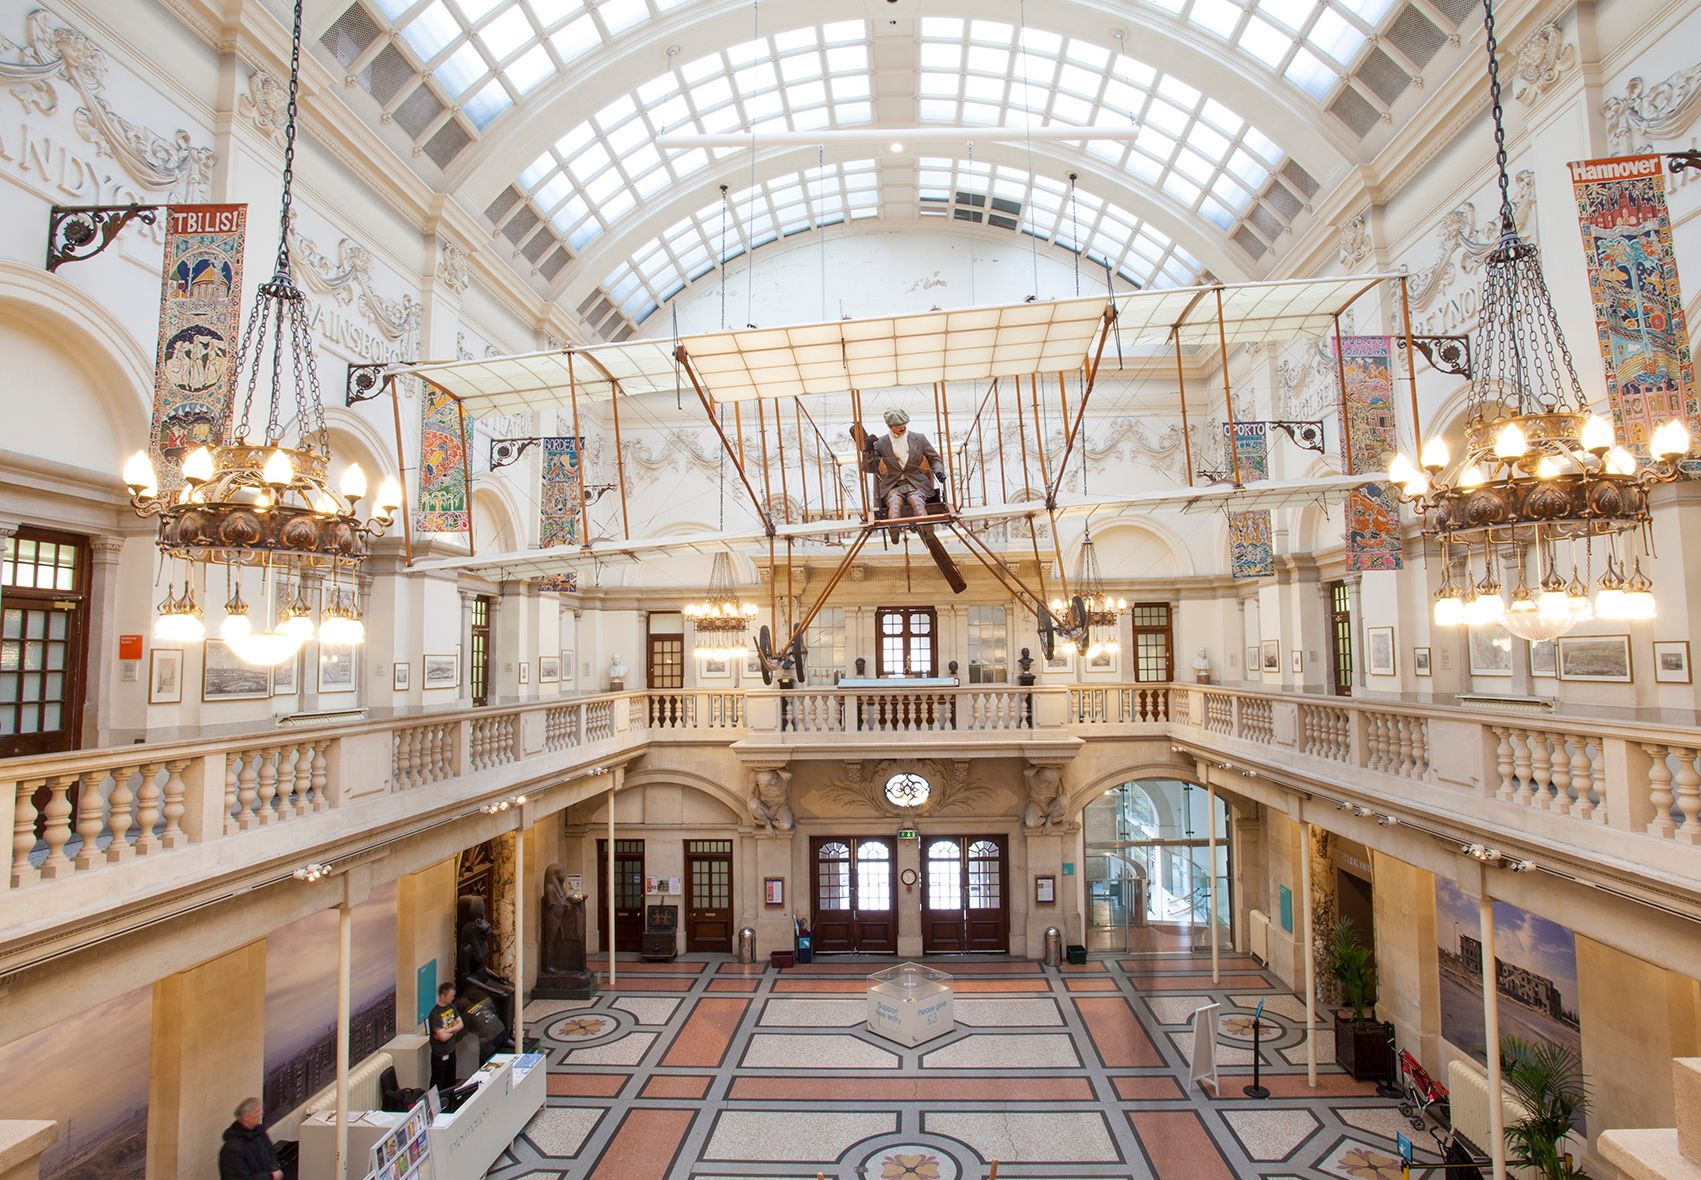 The scheme could benefit local authority museums like Bristol Museum and Art Gallery